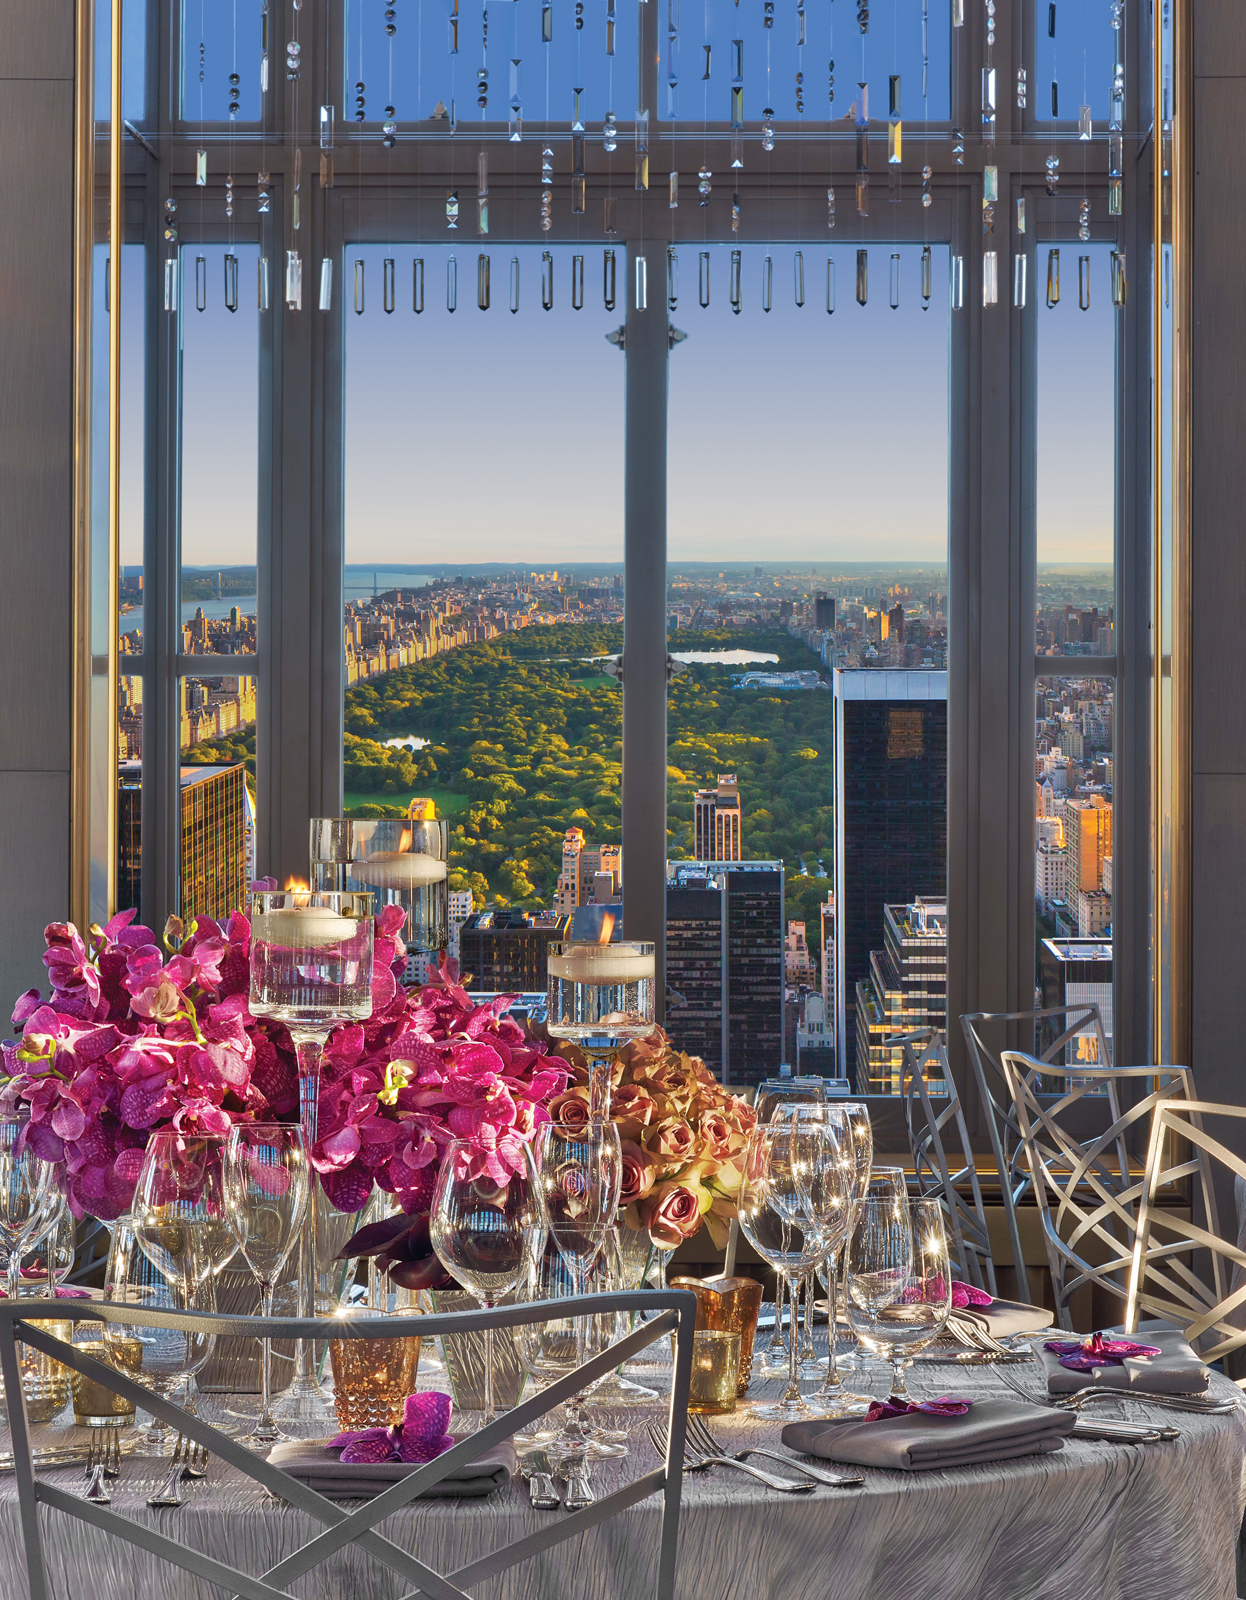 At the Rainbow Room, with a perfect view of Central Park, in New York City.